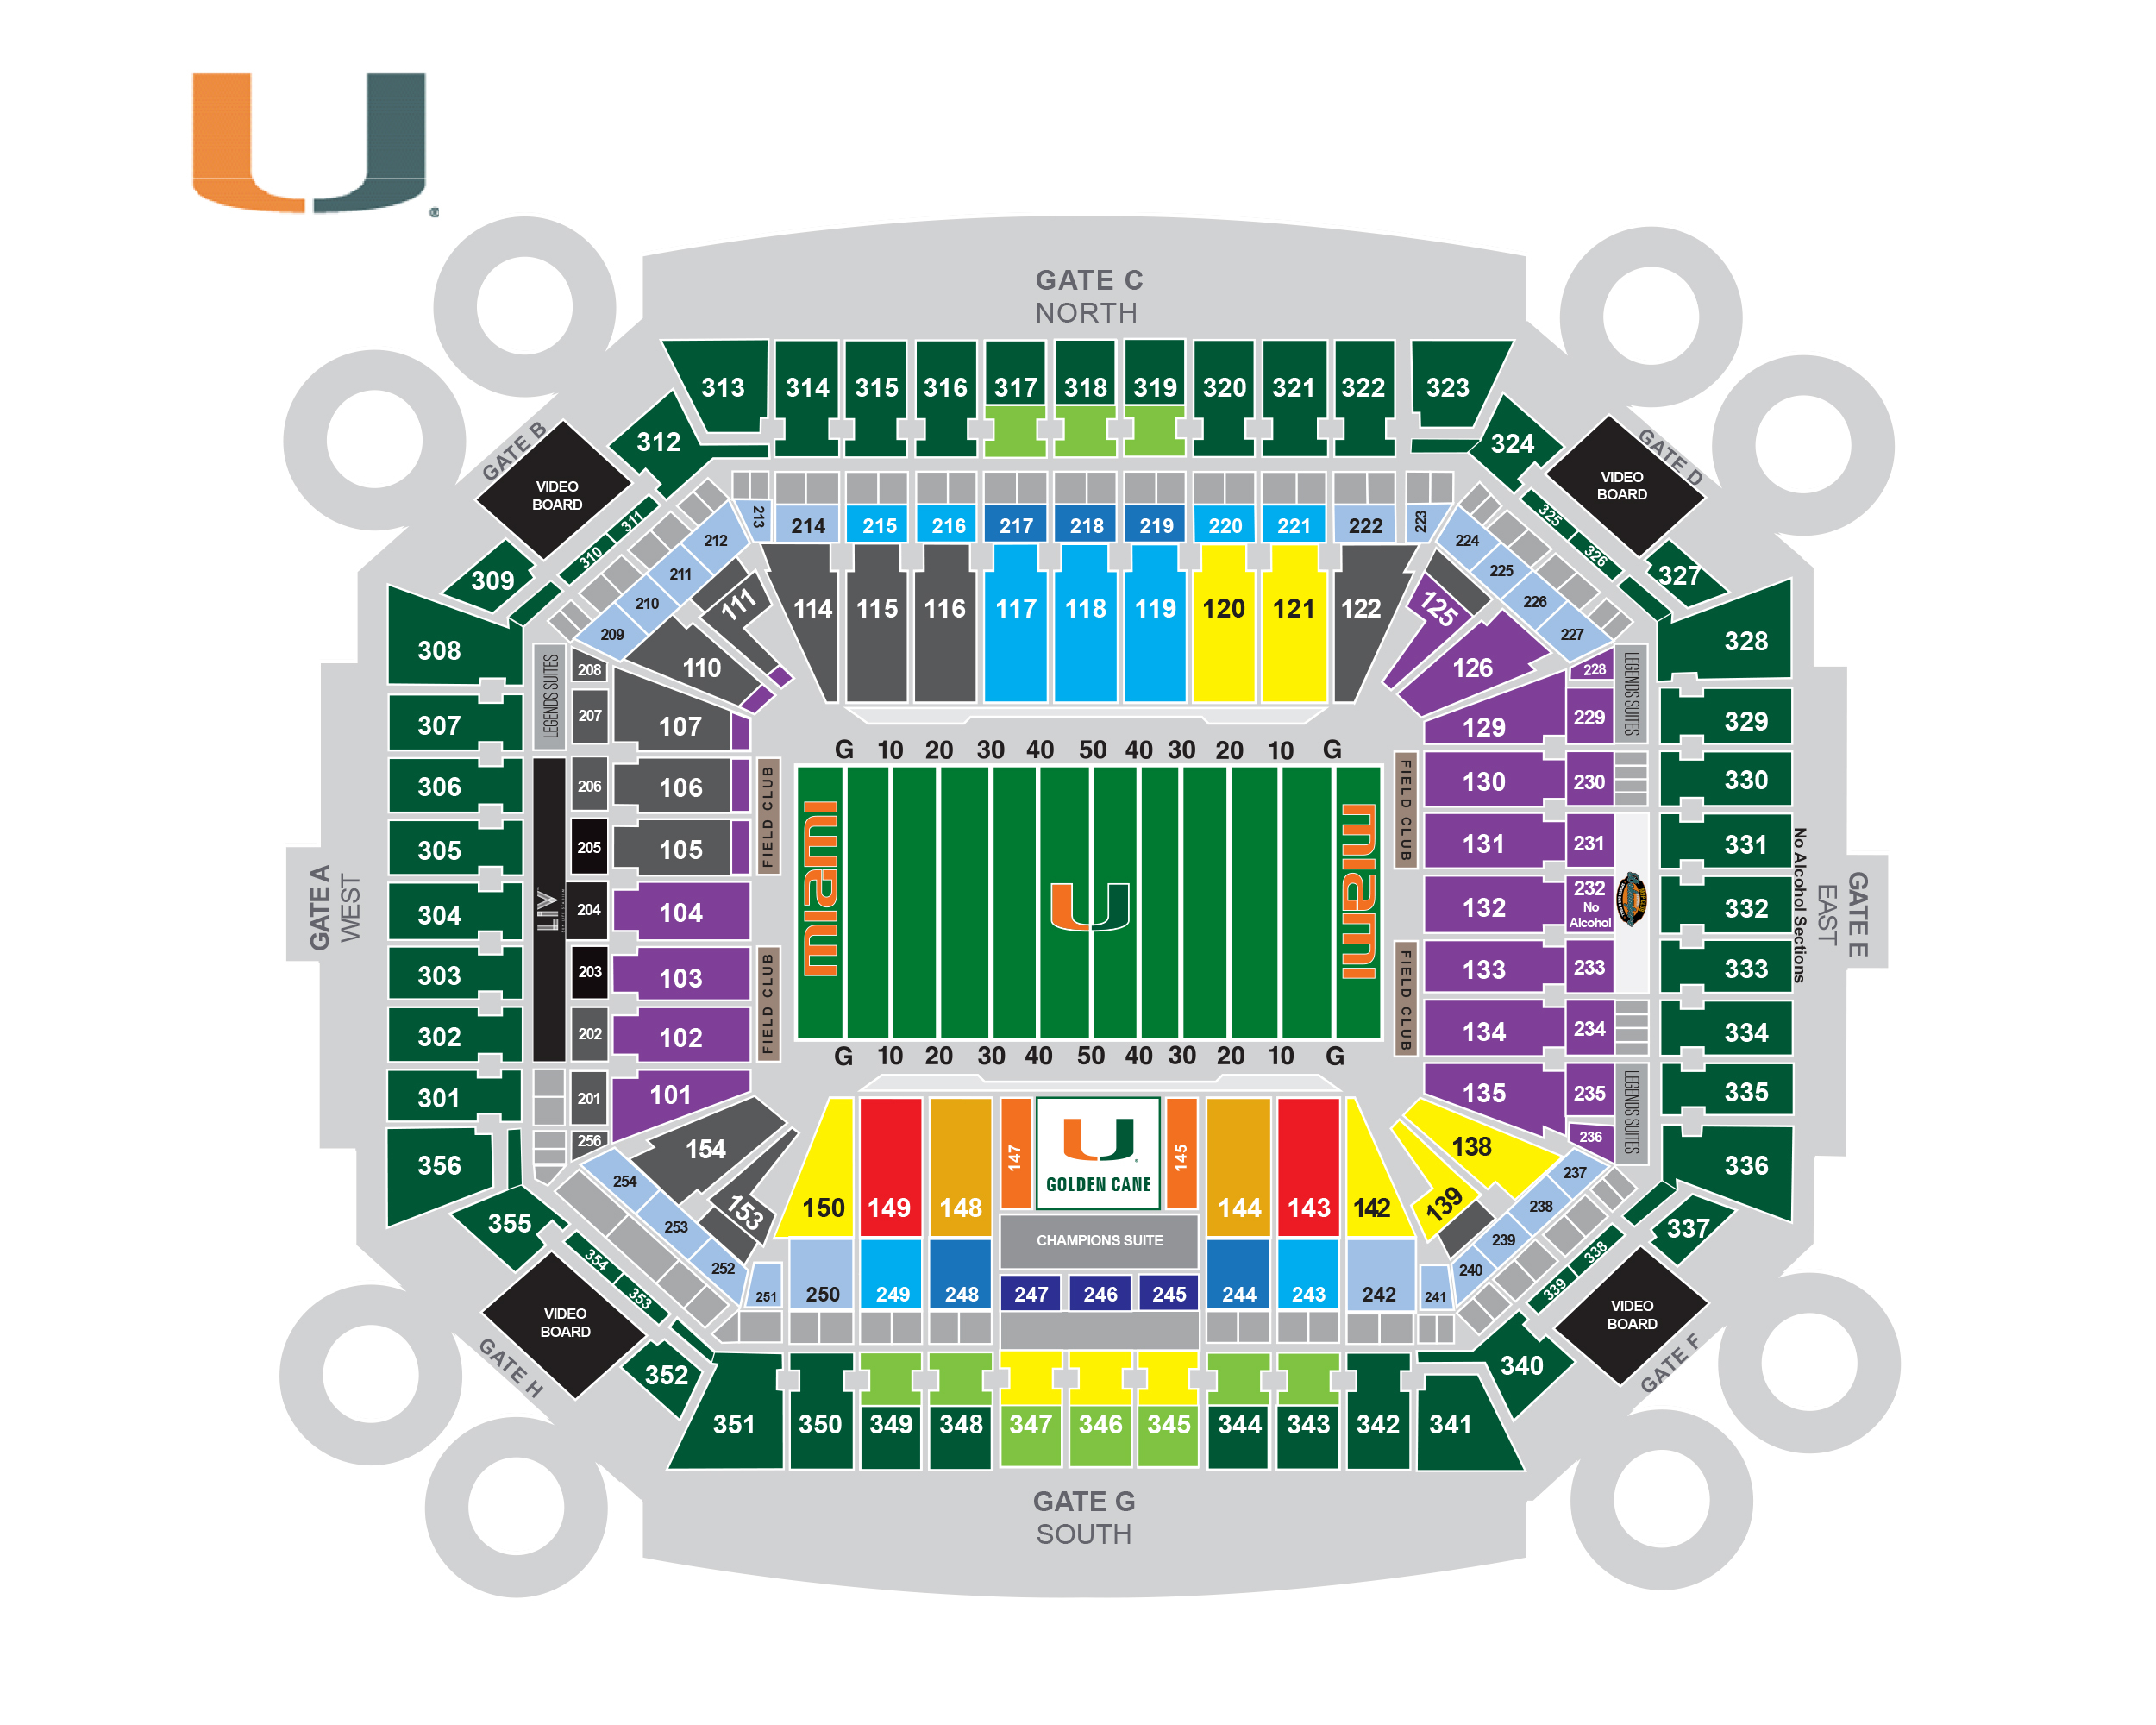 Hard rock stadium miami ft lauderdale tickets schedule